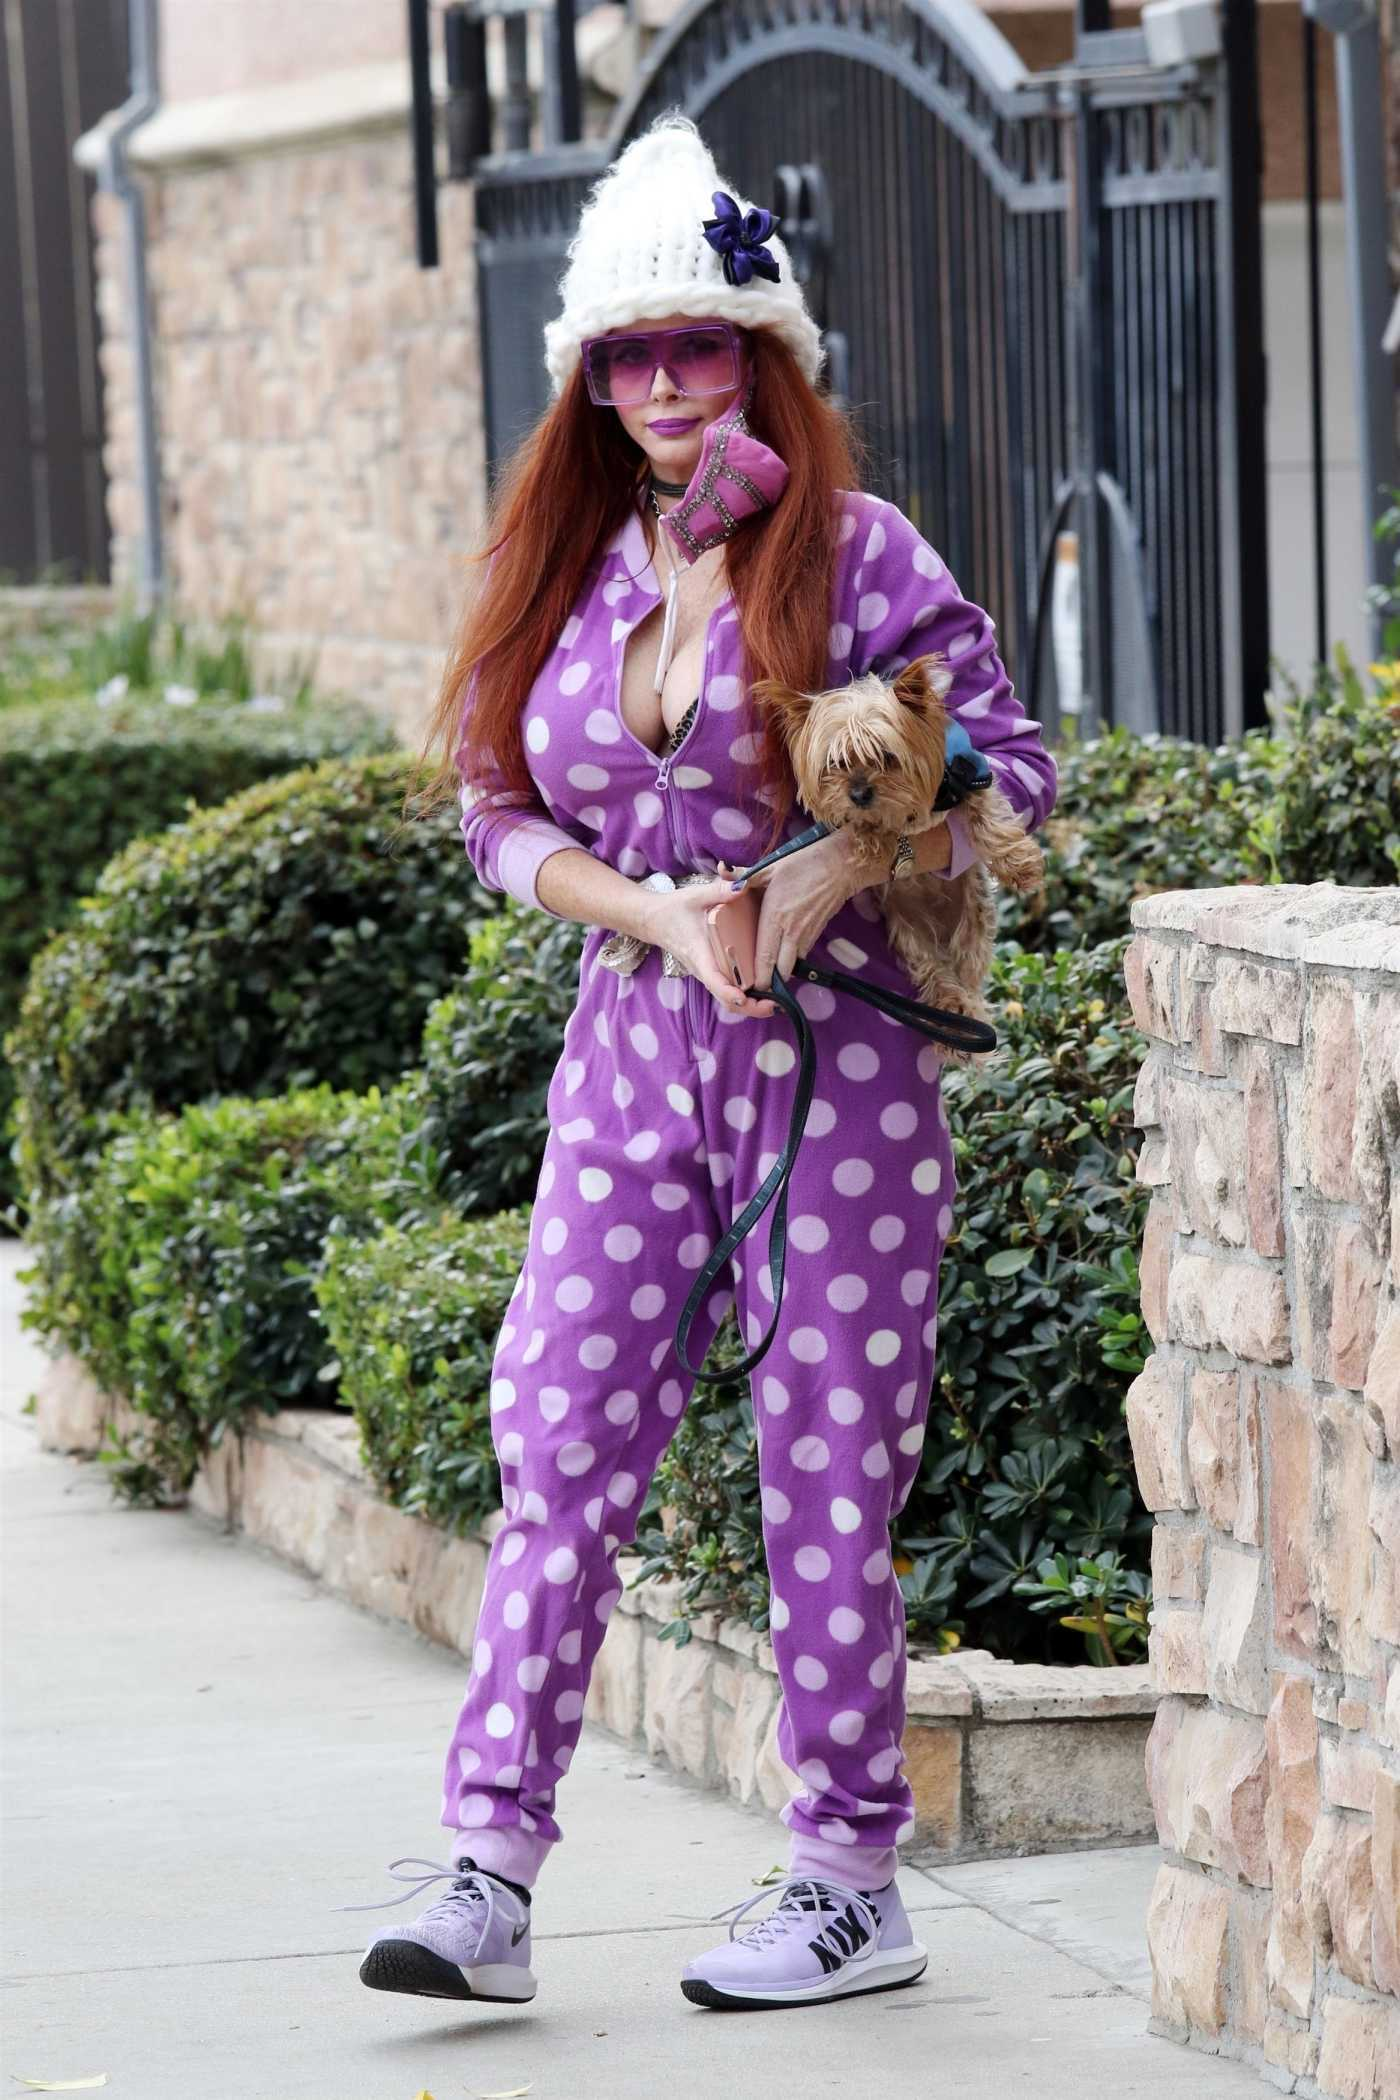 Phoebe Price in a Stretch Polka Dot Lilac Jumpsuit Walks Her Dog in Los Angeles 02/09/2021